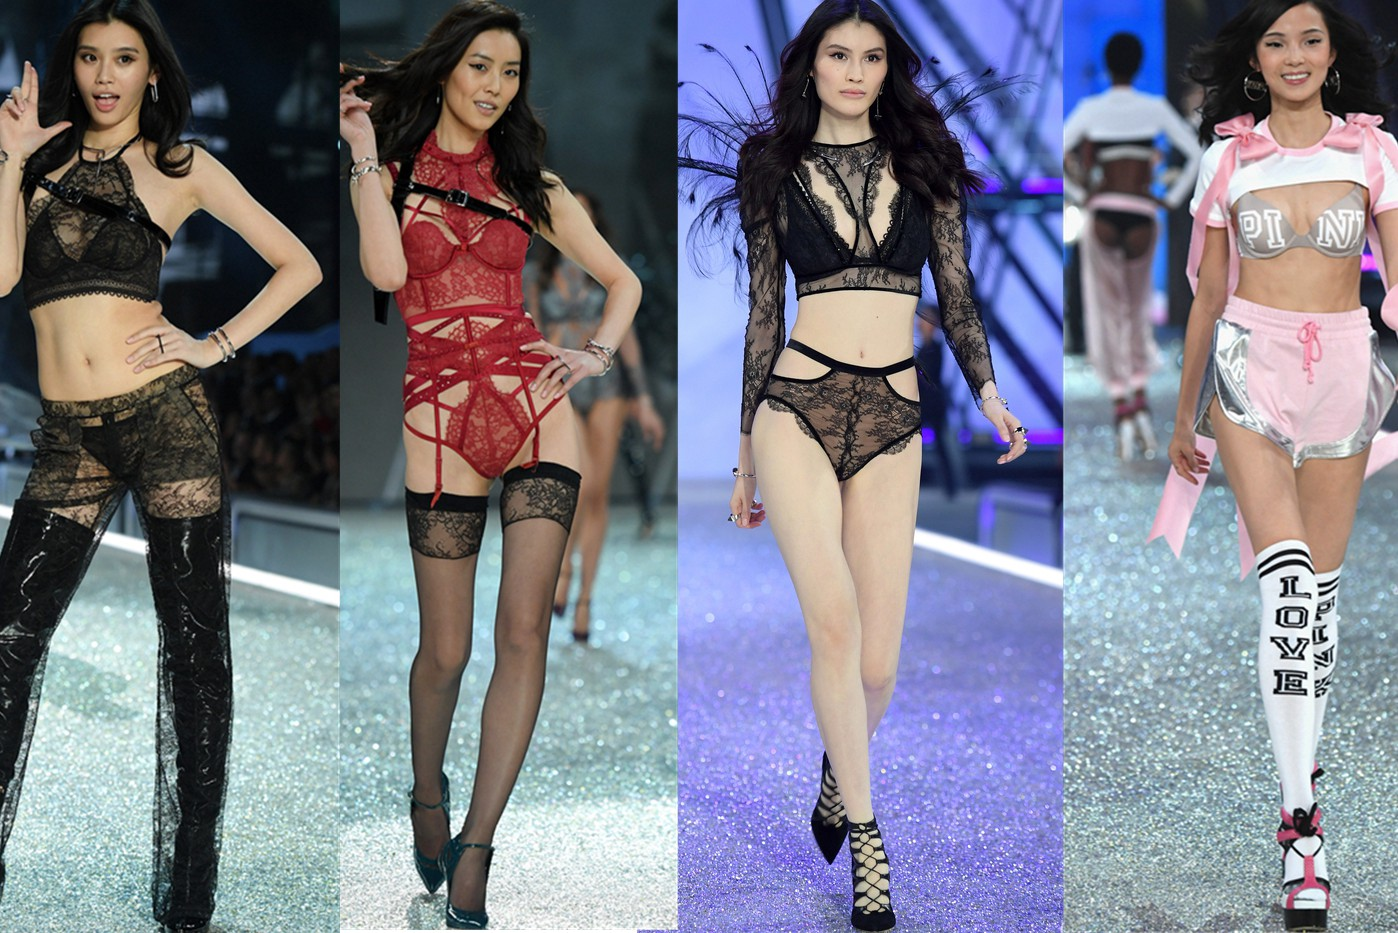 Victoria S Secret Fashion Show 2016 Cultural Appropriation Or Business Smarts By Yu Ping Vickie Wang Medium